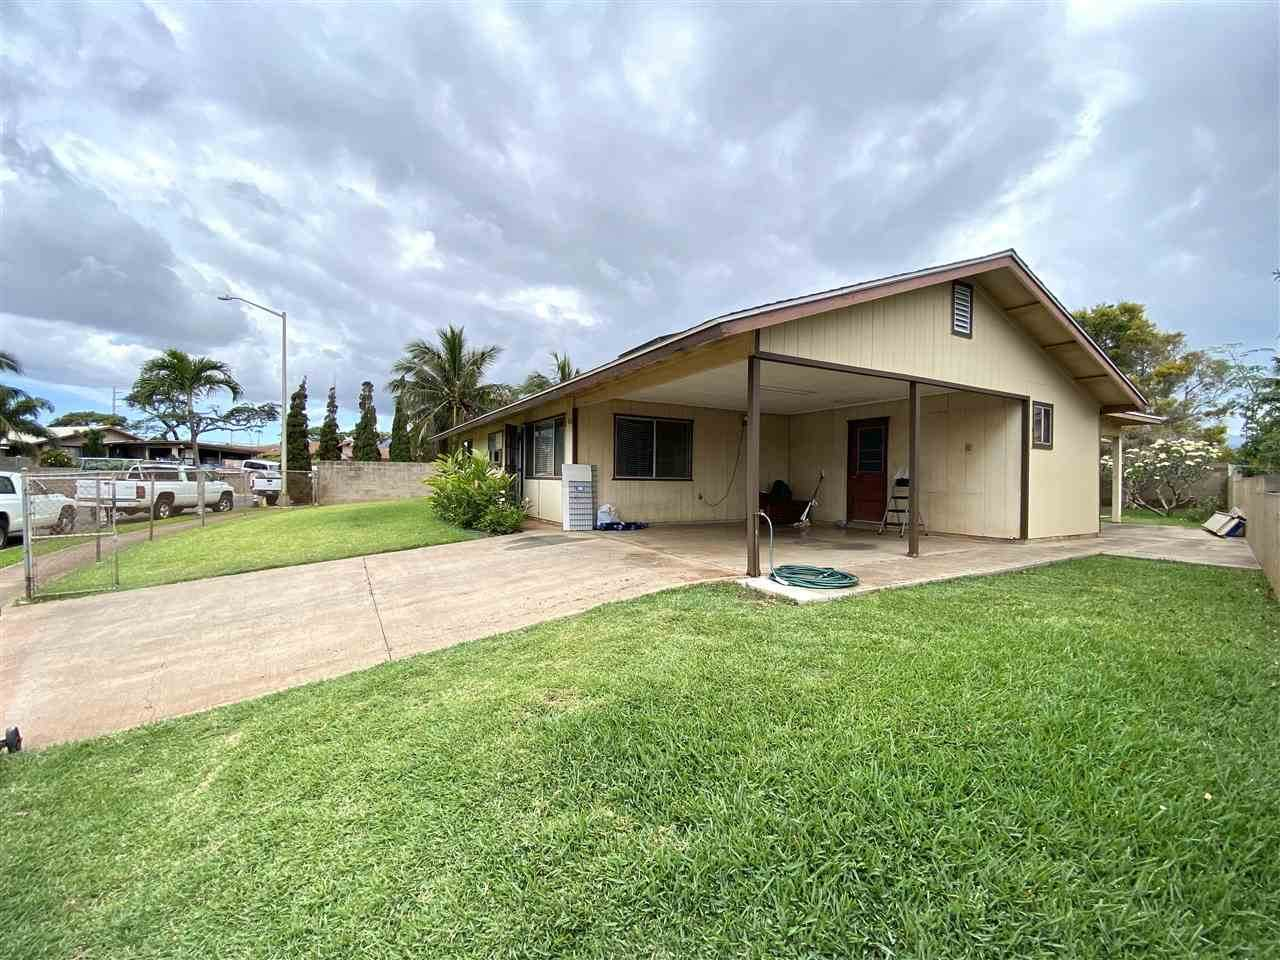 29 Puakala Pl - Photo 1